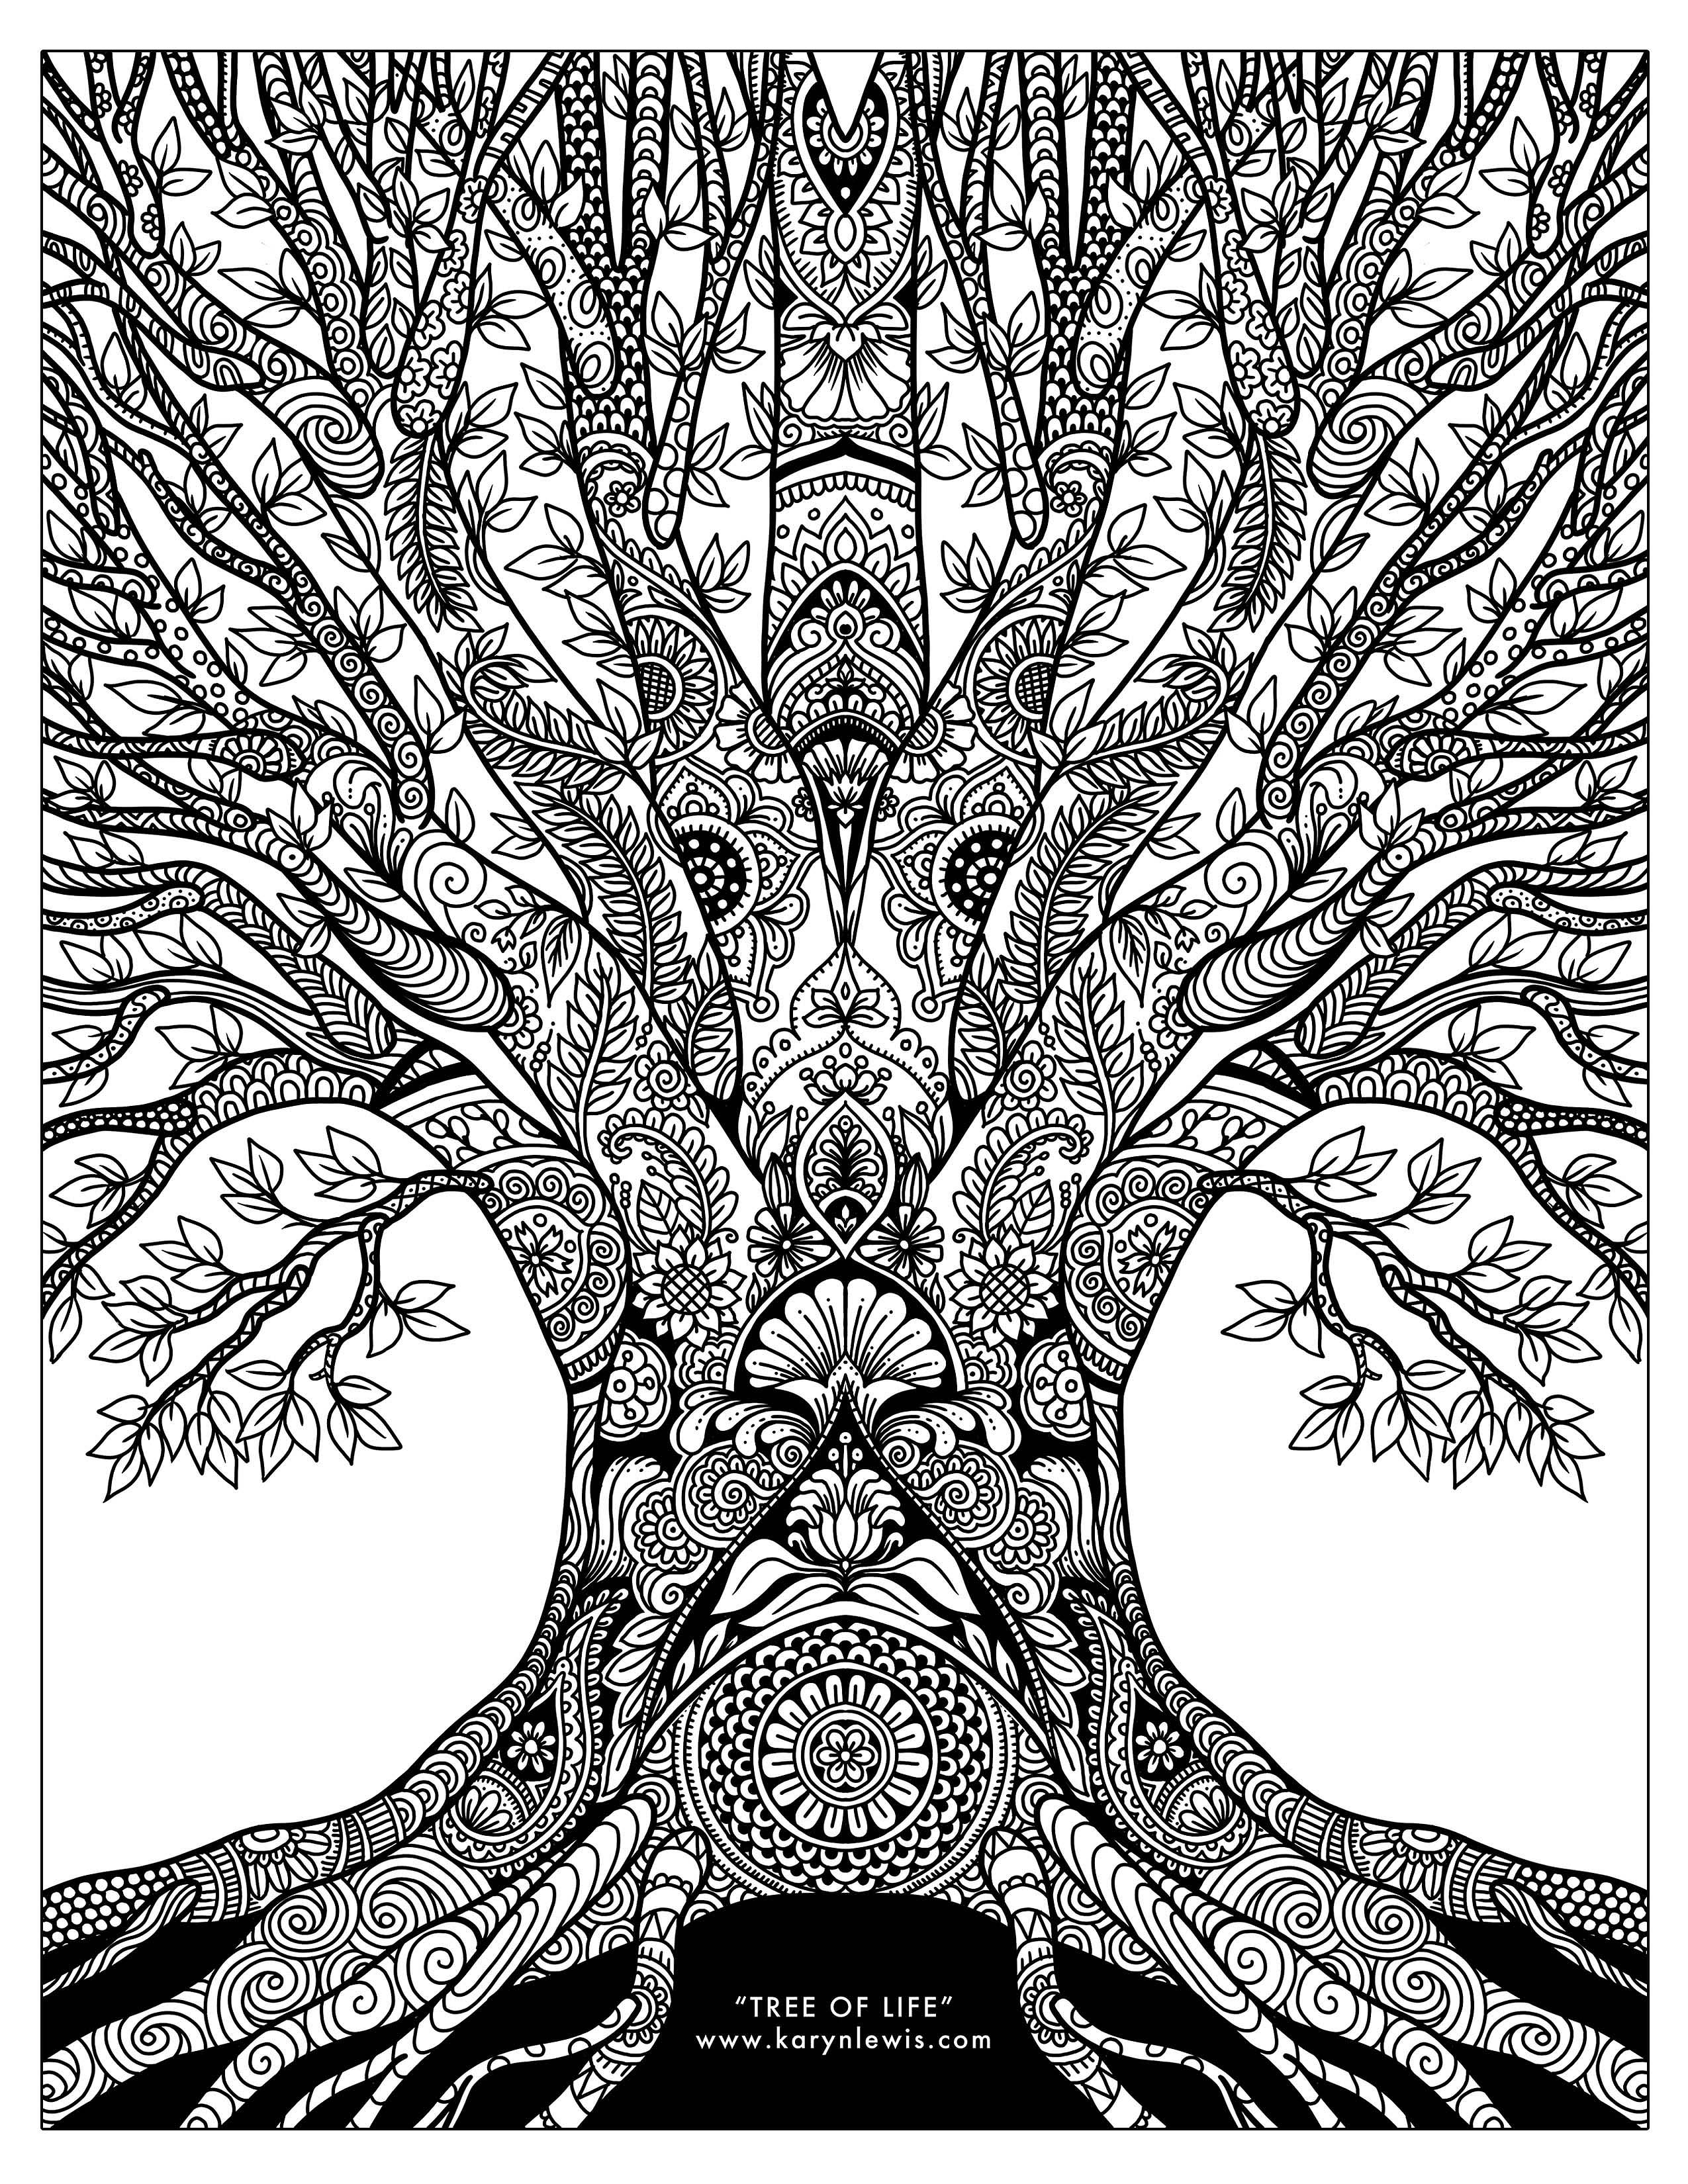 tree with leaves coloring pages quottree of lifequot doodle art free adult coloring page karyn coloring pages with leaves tree